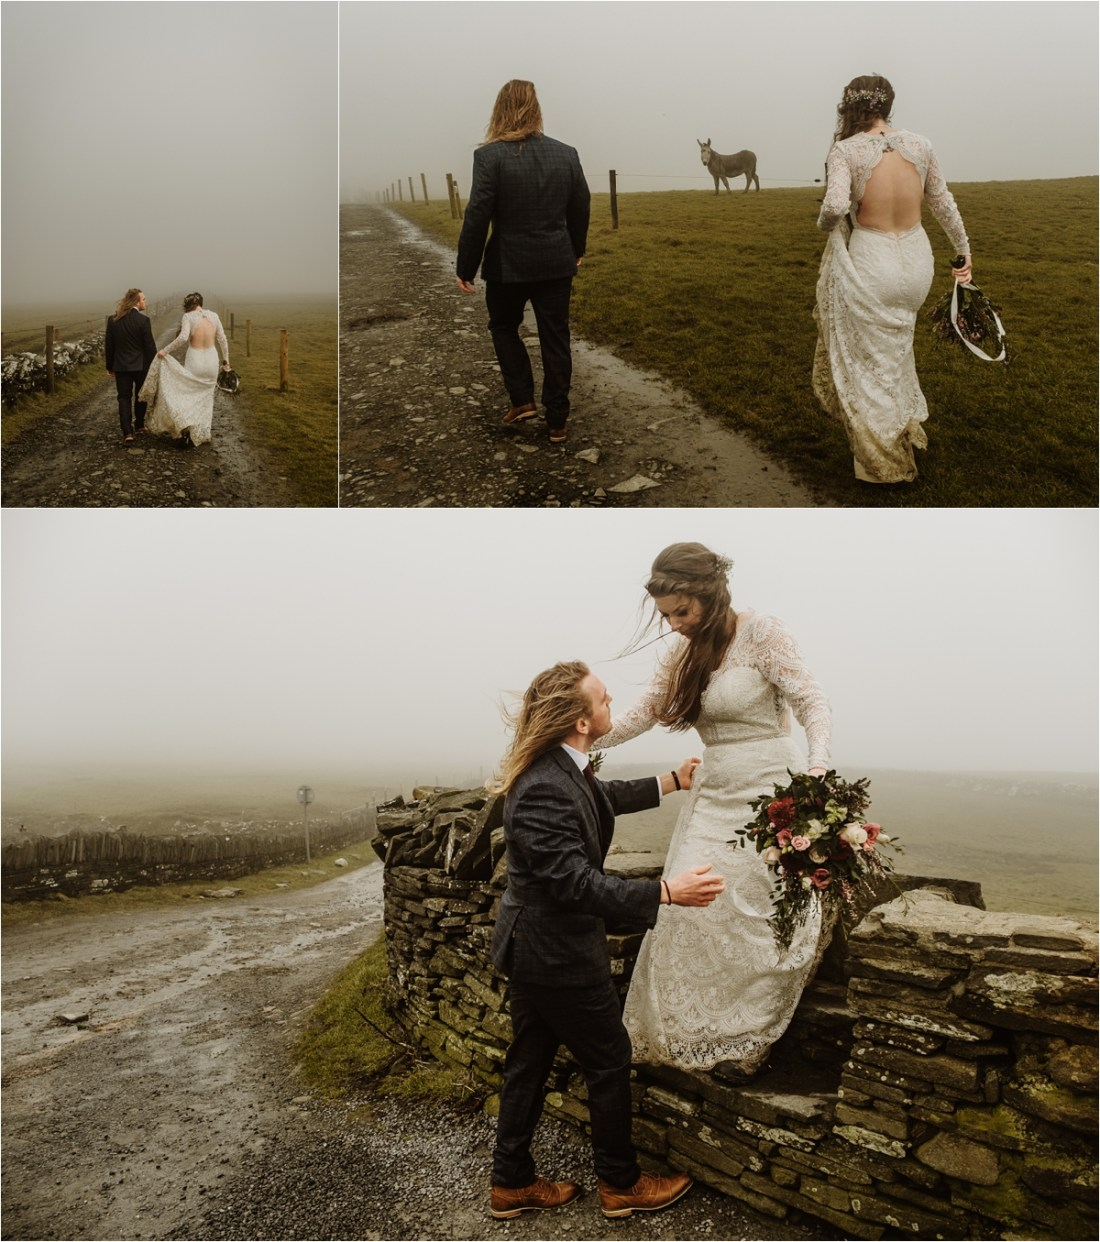 Hiking a foggy path after their elopement at the Cliffs of Moher, Elizabeth and Matt walk back to Doolin. Photos by Europe Elopement Photographer Wild Connections Photography